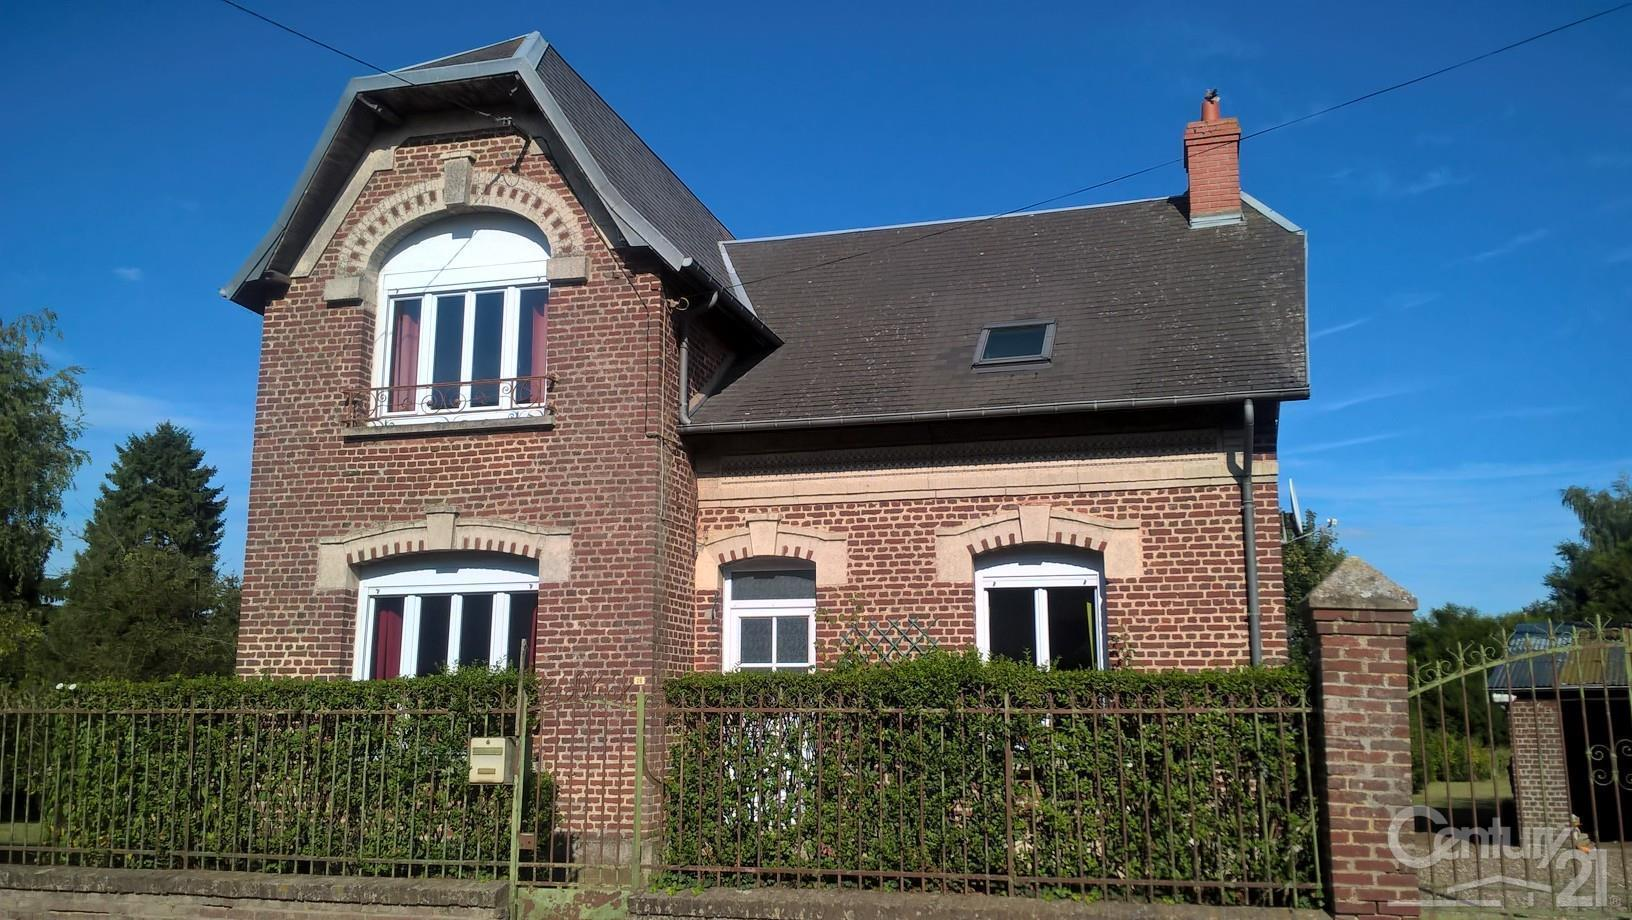 Perfect maison vendre pices m peronne picardie with maison for Achat maison picardie